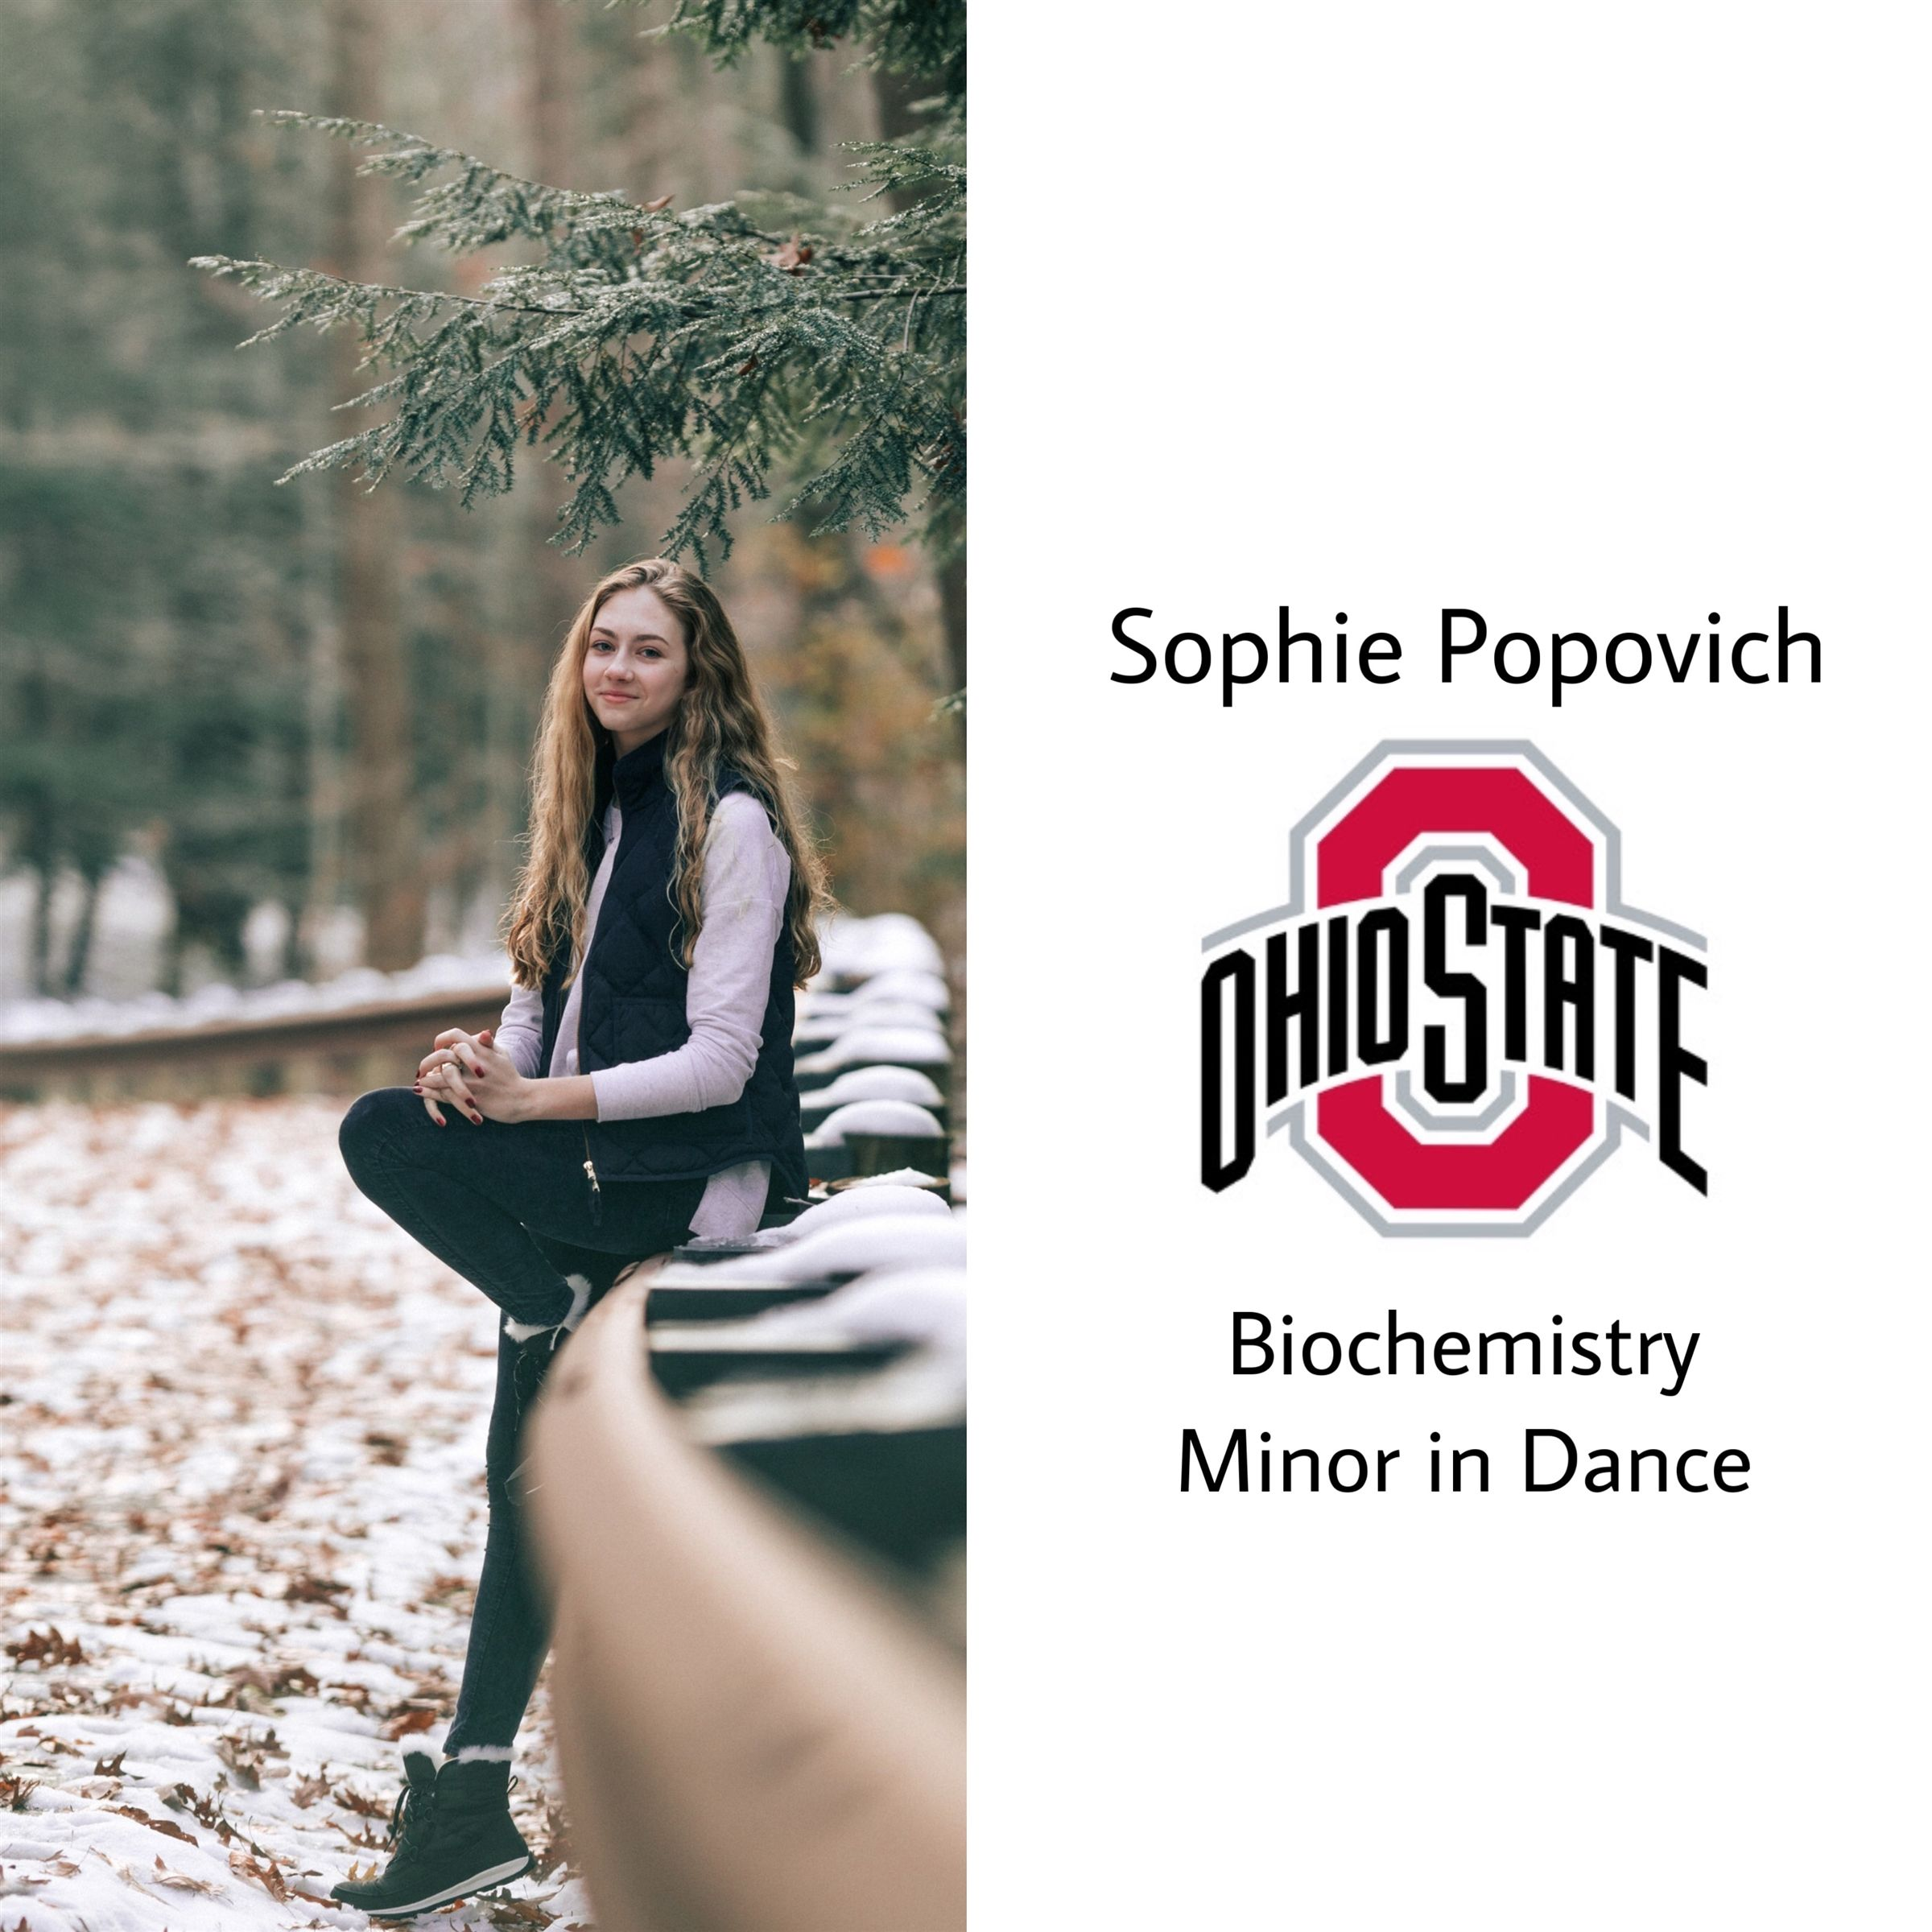 ANOTHER BUCKEYE!! Congrats Sophie, she will be at t'OSU next year majoring in biochem and minoring in dance!! So proud and so happy for you! :)